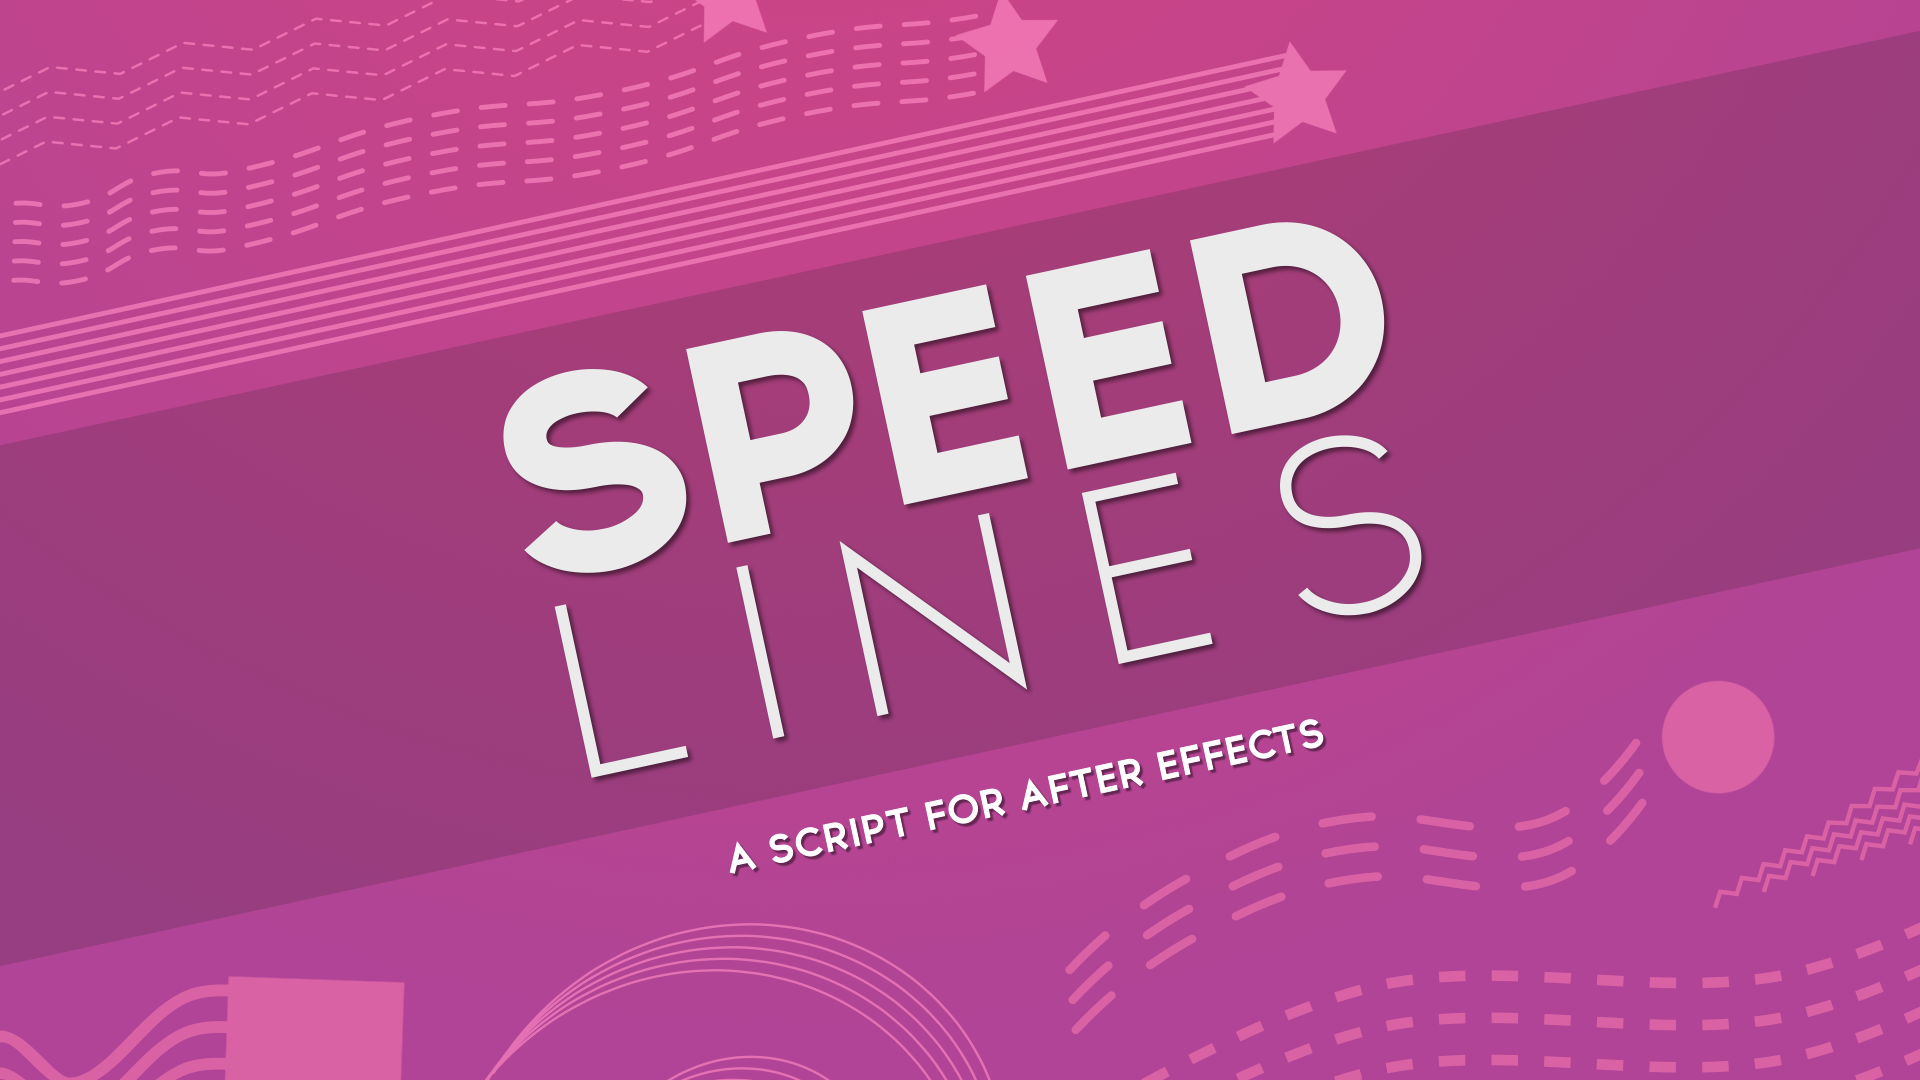 Speed Lines Script For After Effects After Effects Script Speed